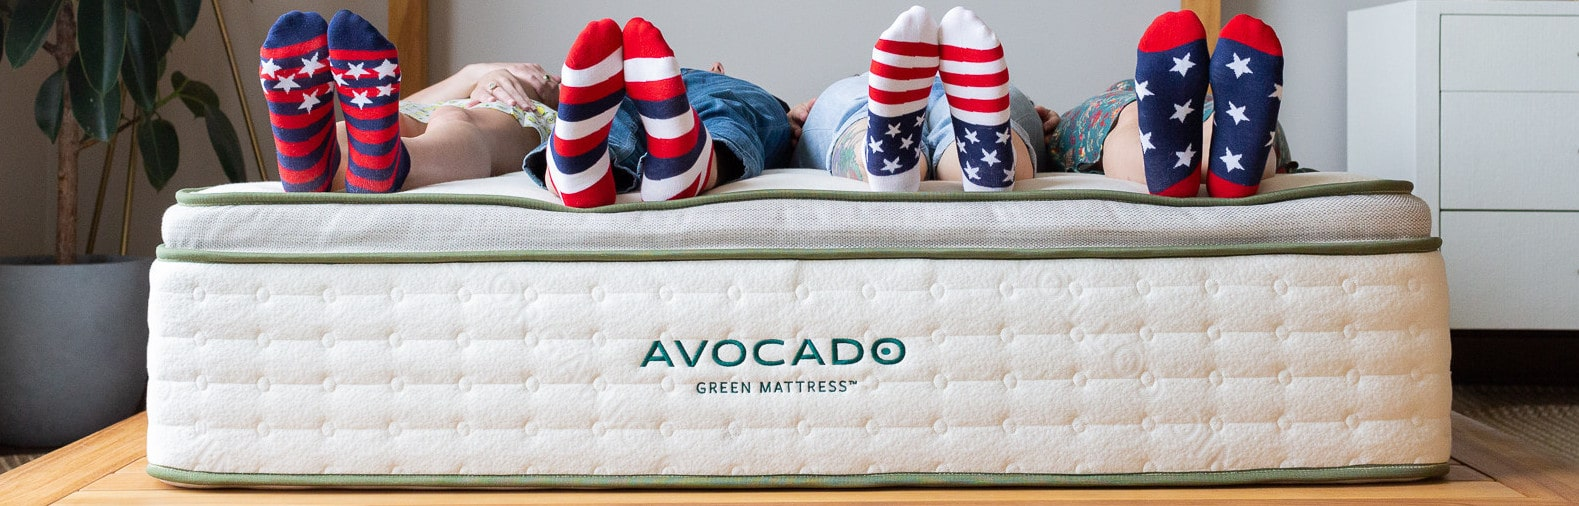 avocado mattress for large people